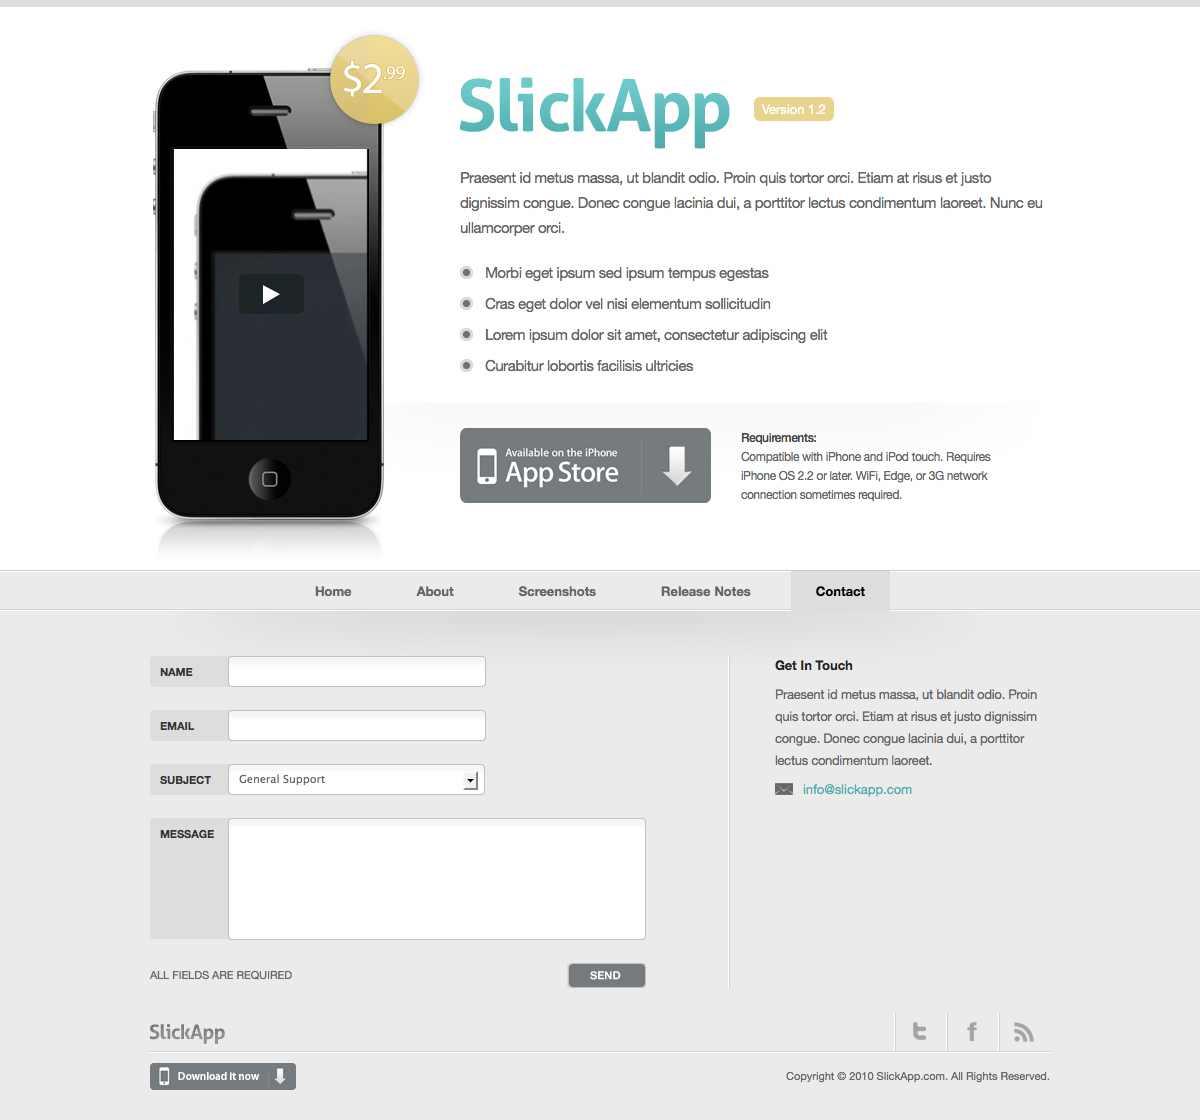 SlickApp - iPhone / Mobile App Website Theme - Contact page with working ajax contact form and validation.